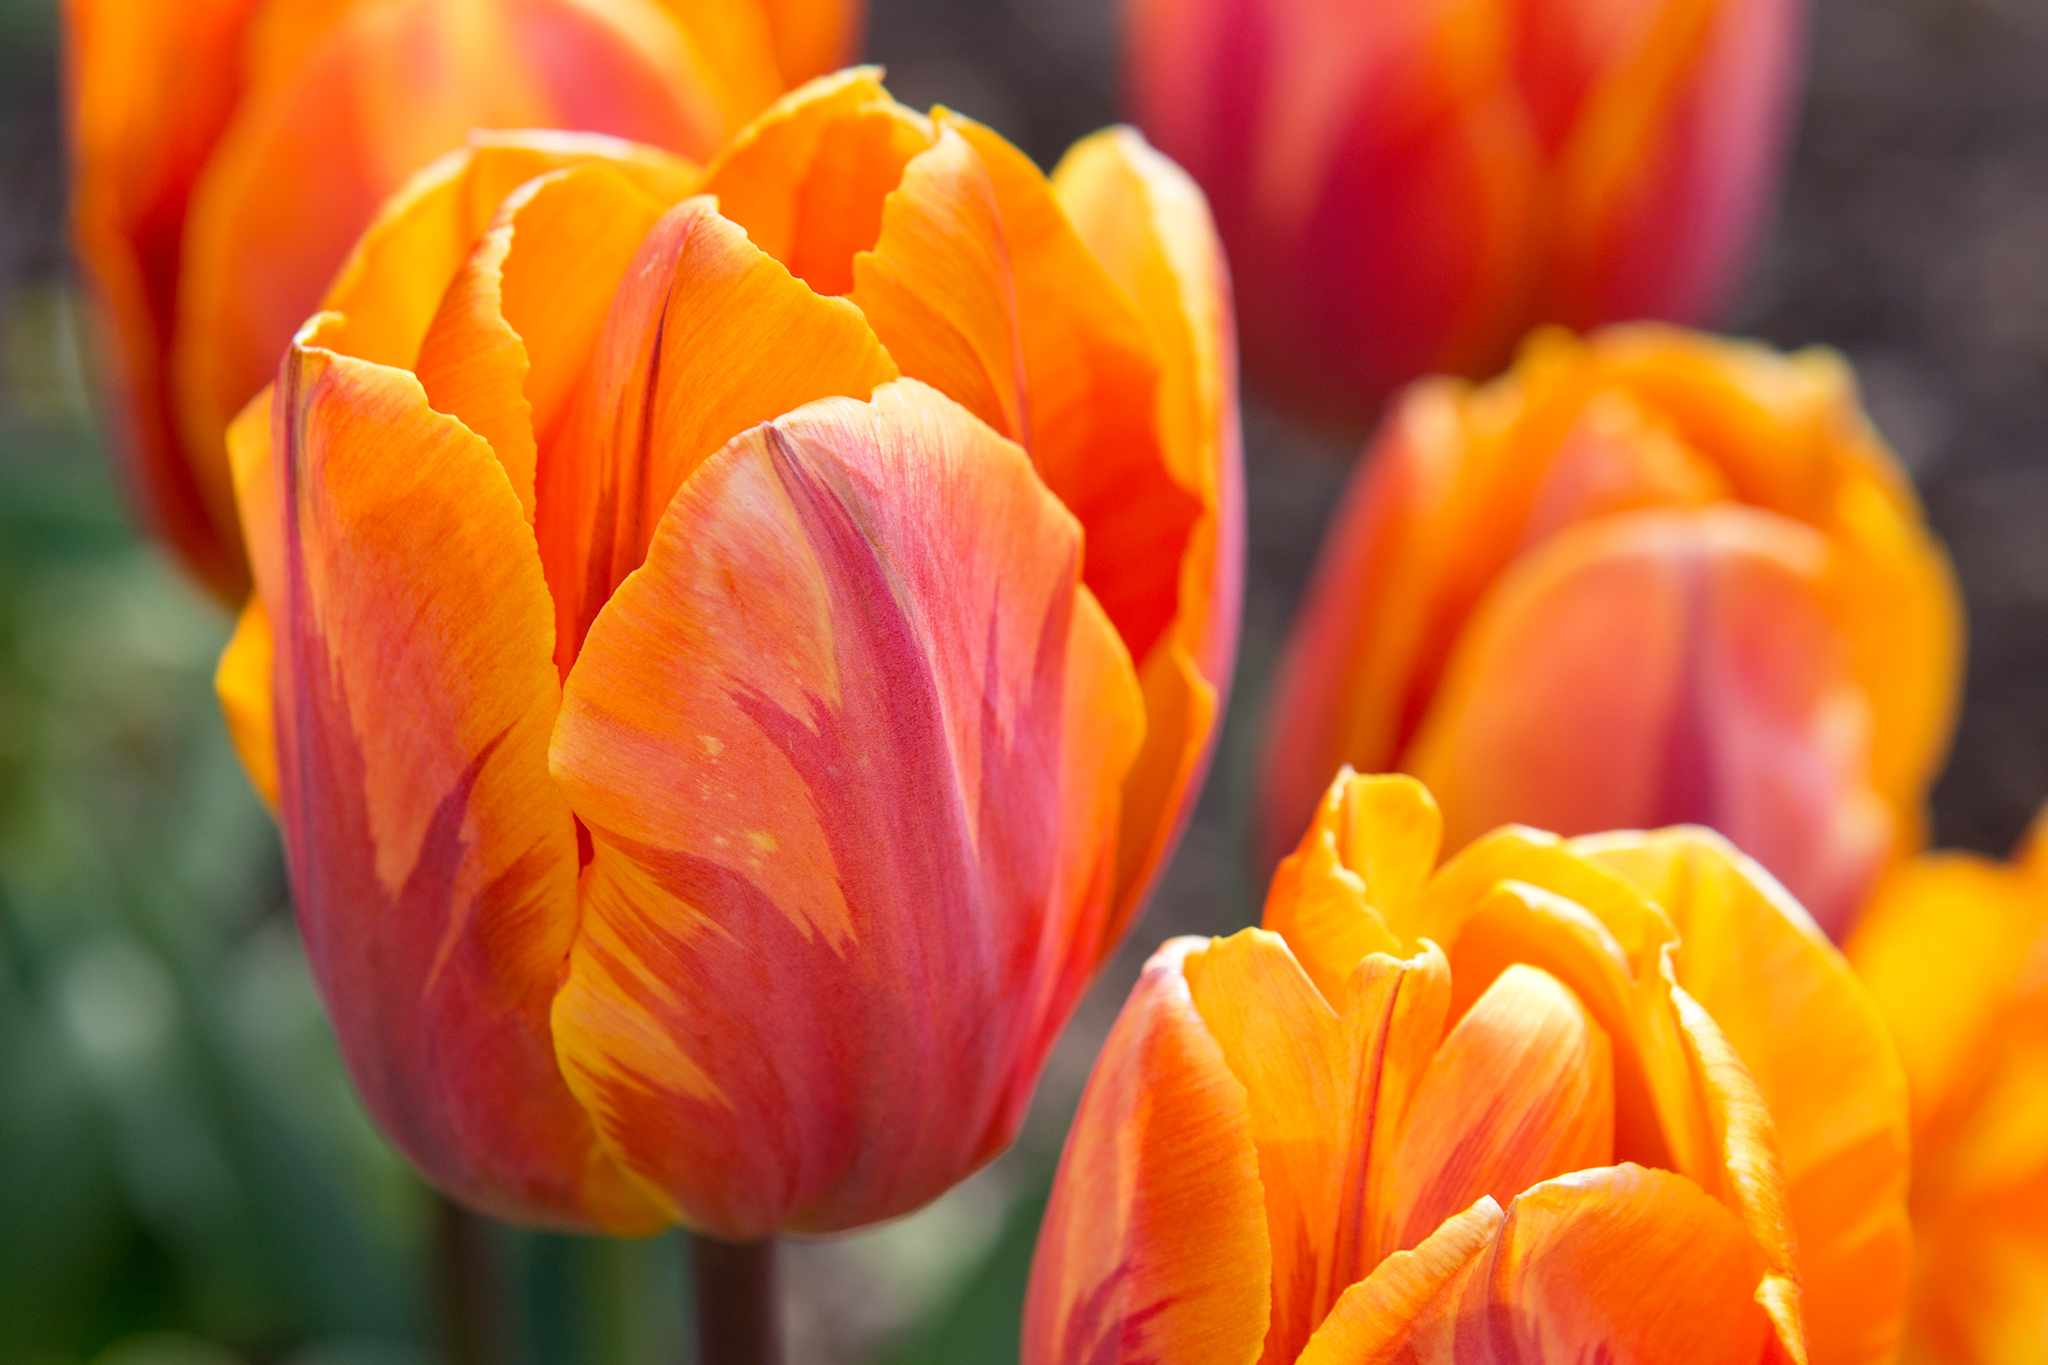 Favourite Orange Tulips to Grow